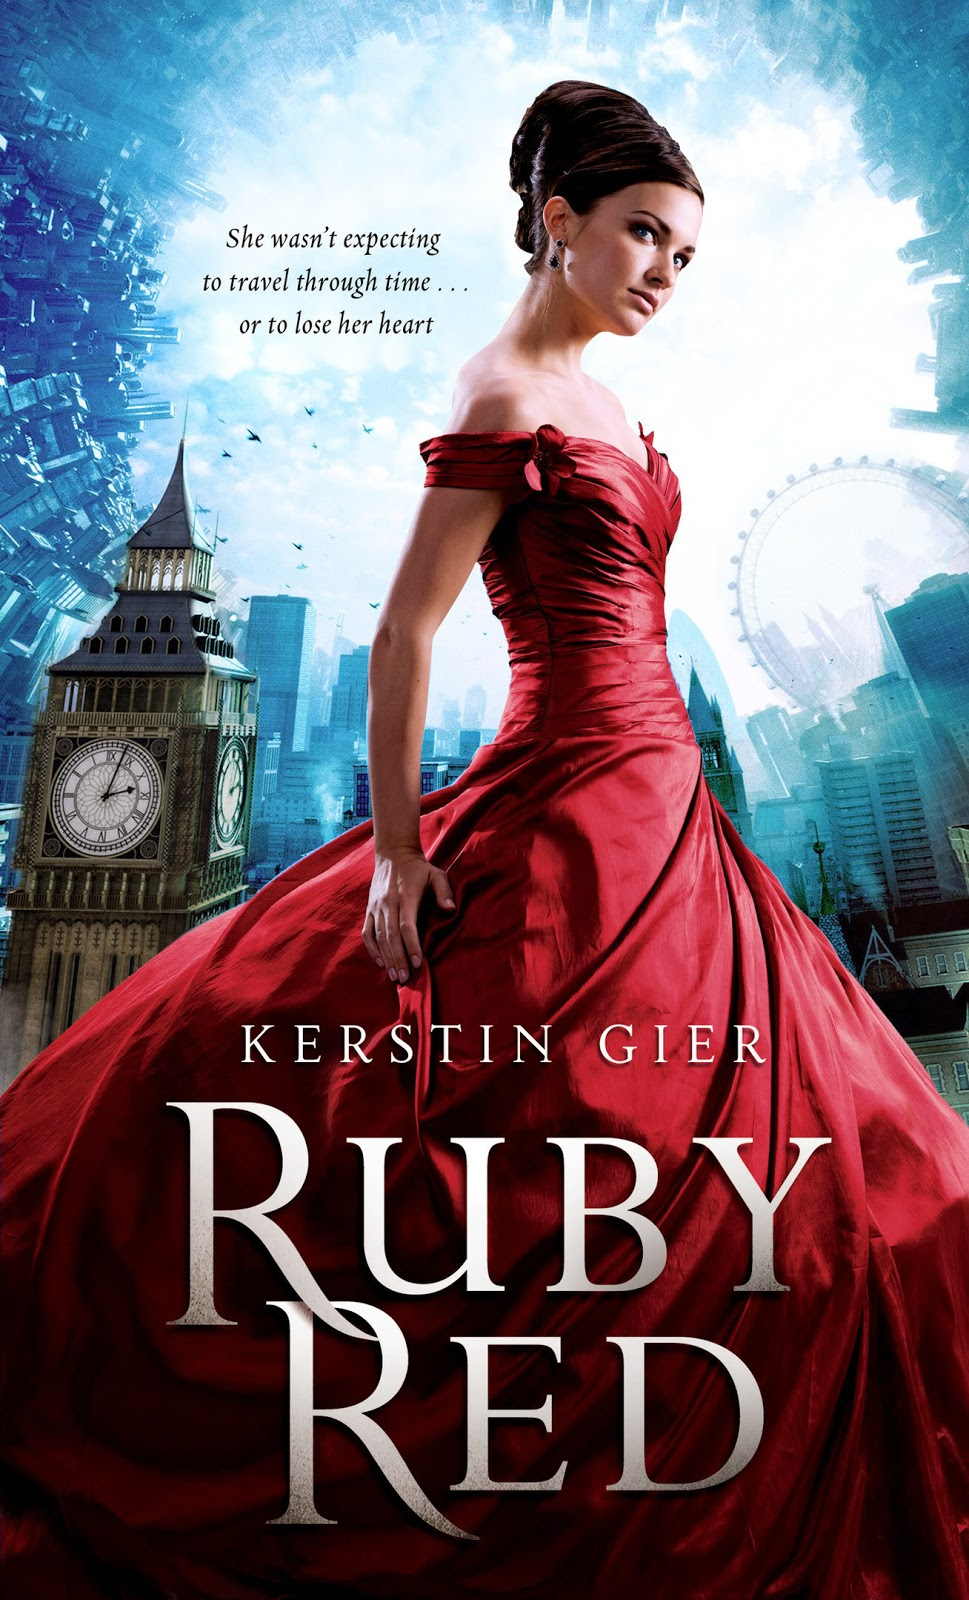 ruby red by kerstin gier us book cover hd large precious stone trilogy ruby red series ya young adult time travel science fiction romance